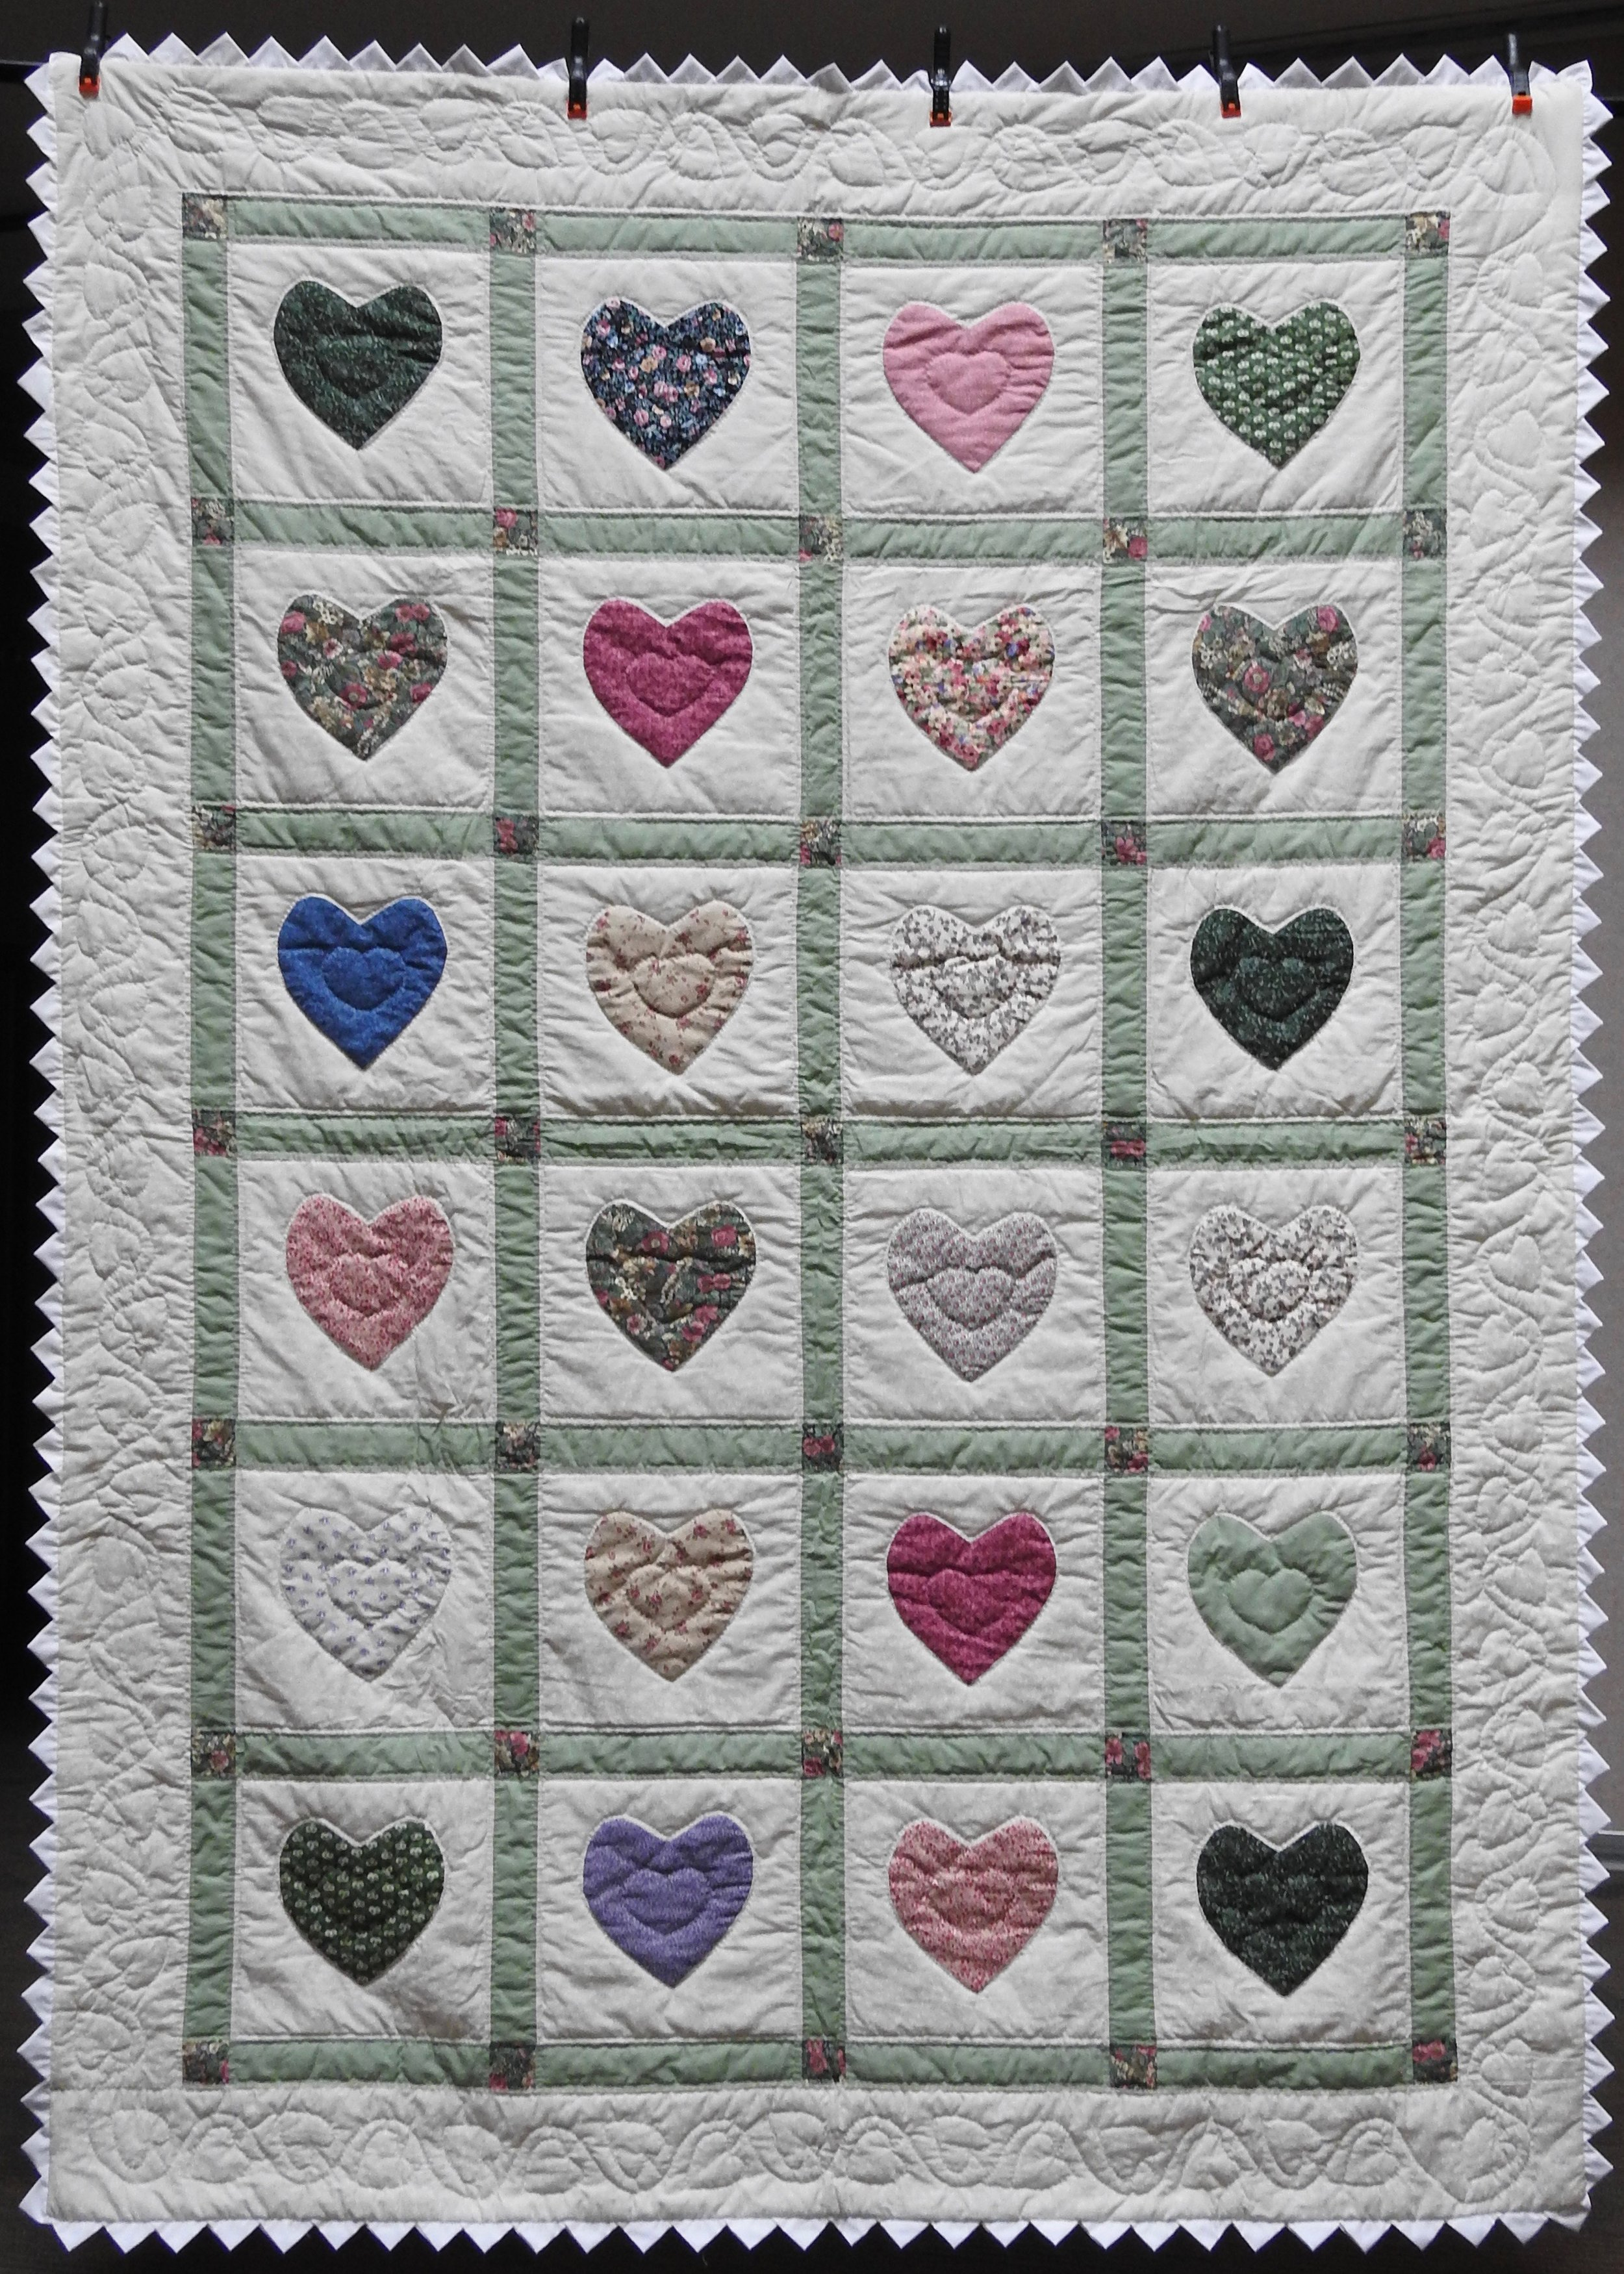 """Appliquéd Hearts, Pieced, Appliquéd, & Hand Quilted by Fern Gingerich, donated by Howard Miami Mennonite Church, 69 x 96"""""""